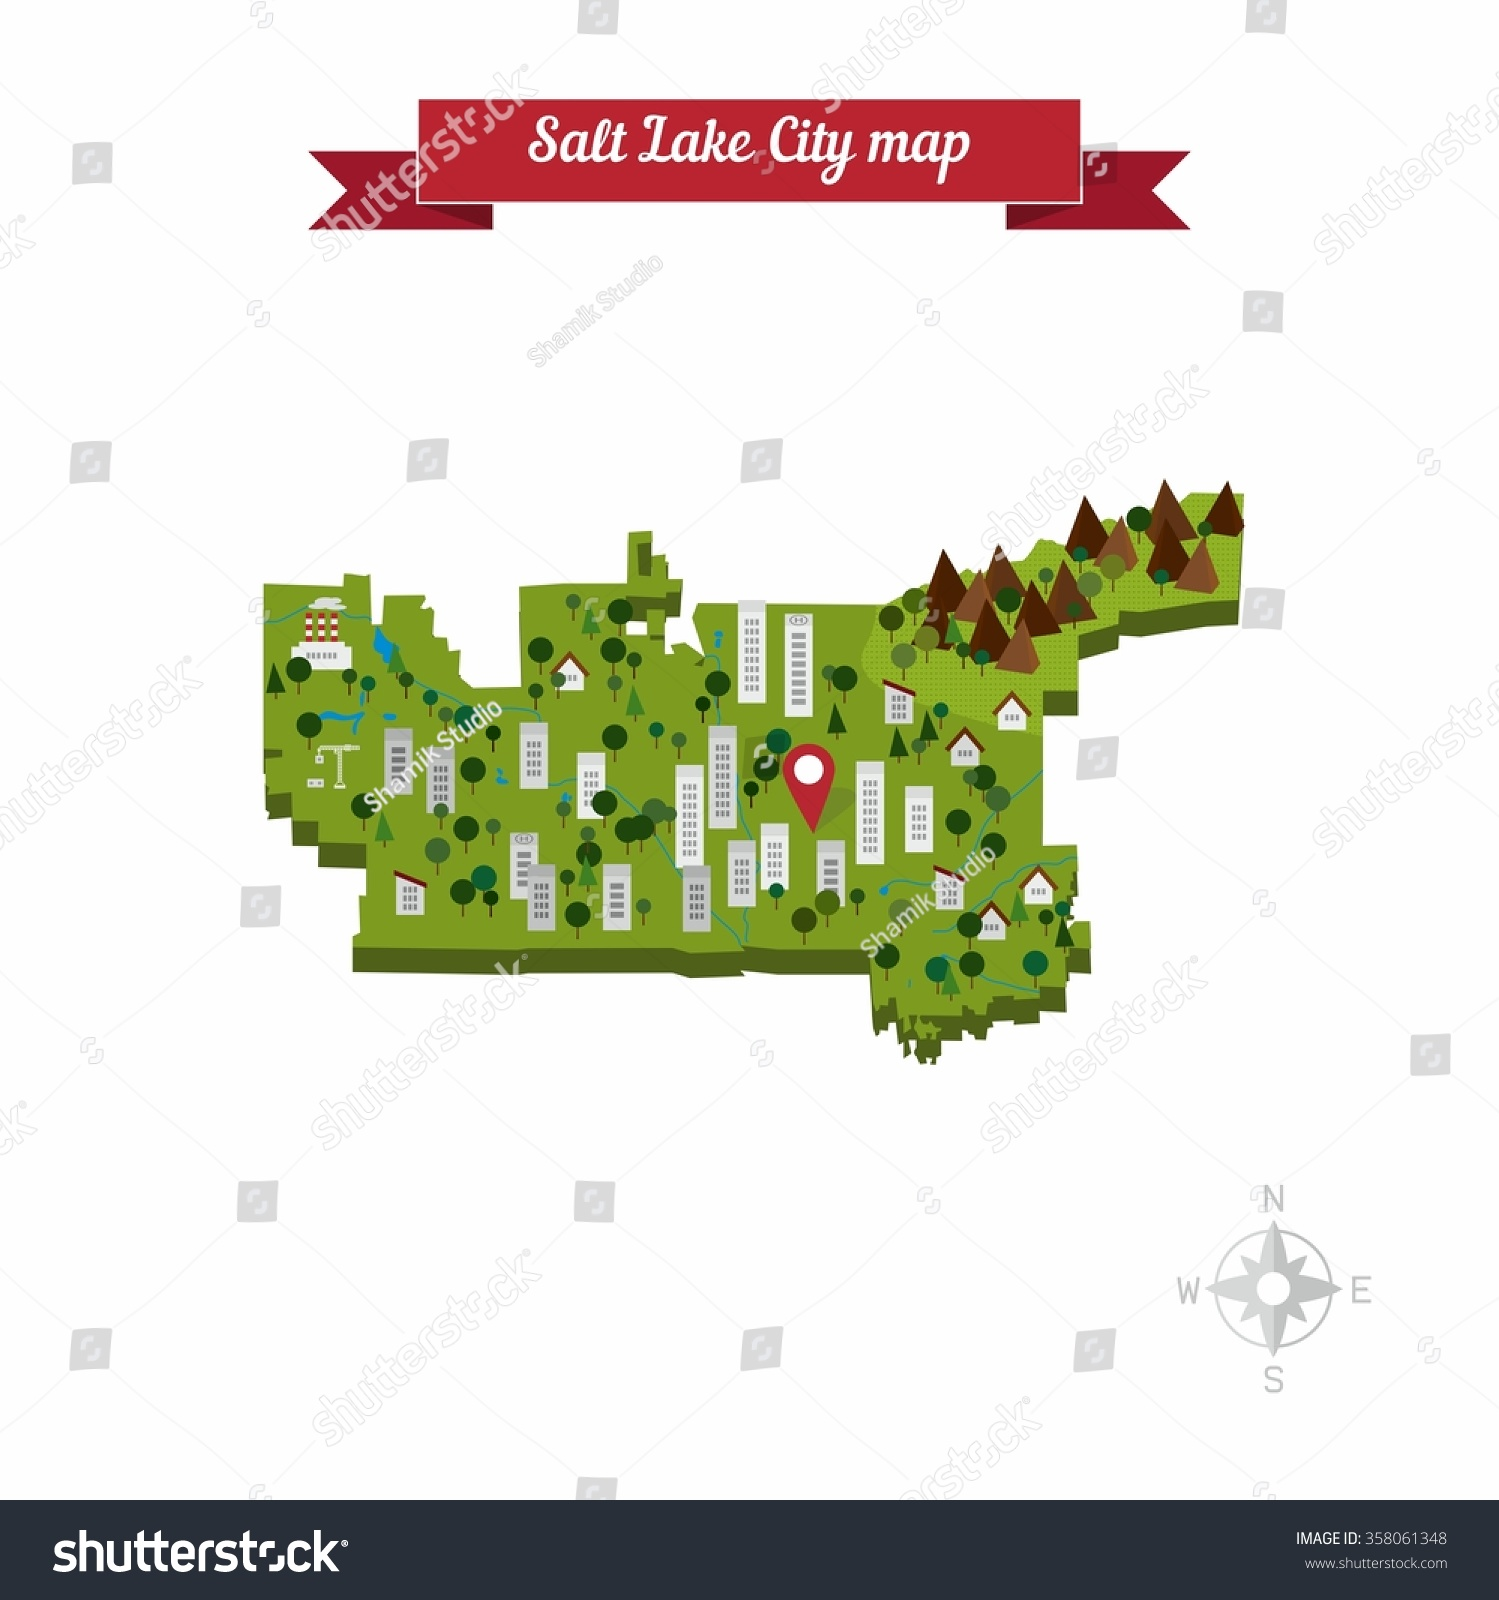 Salt Lake City Utah Usa Map Stock Vector Shutterstock - Map usa utah